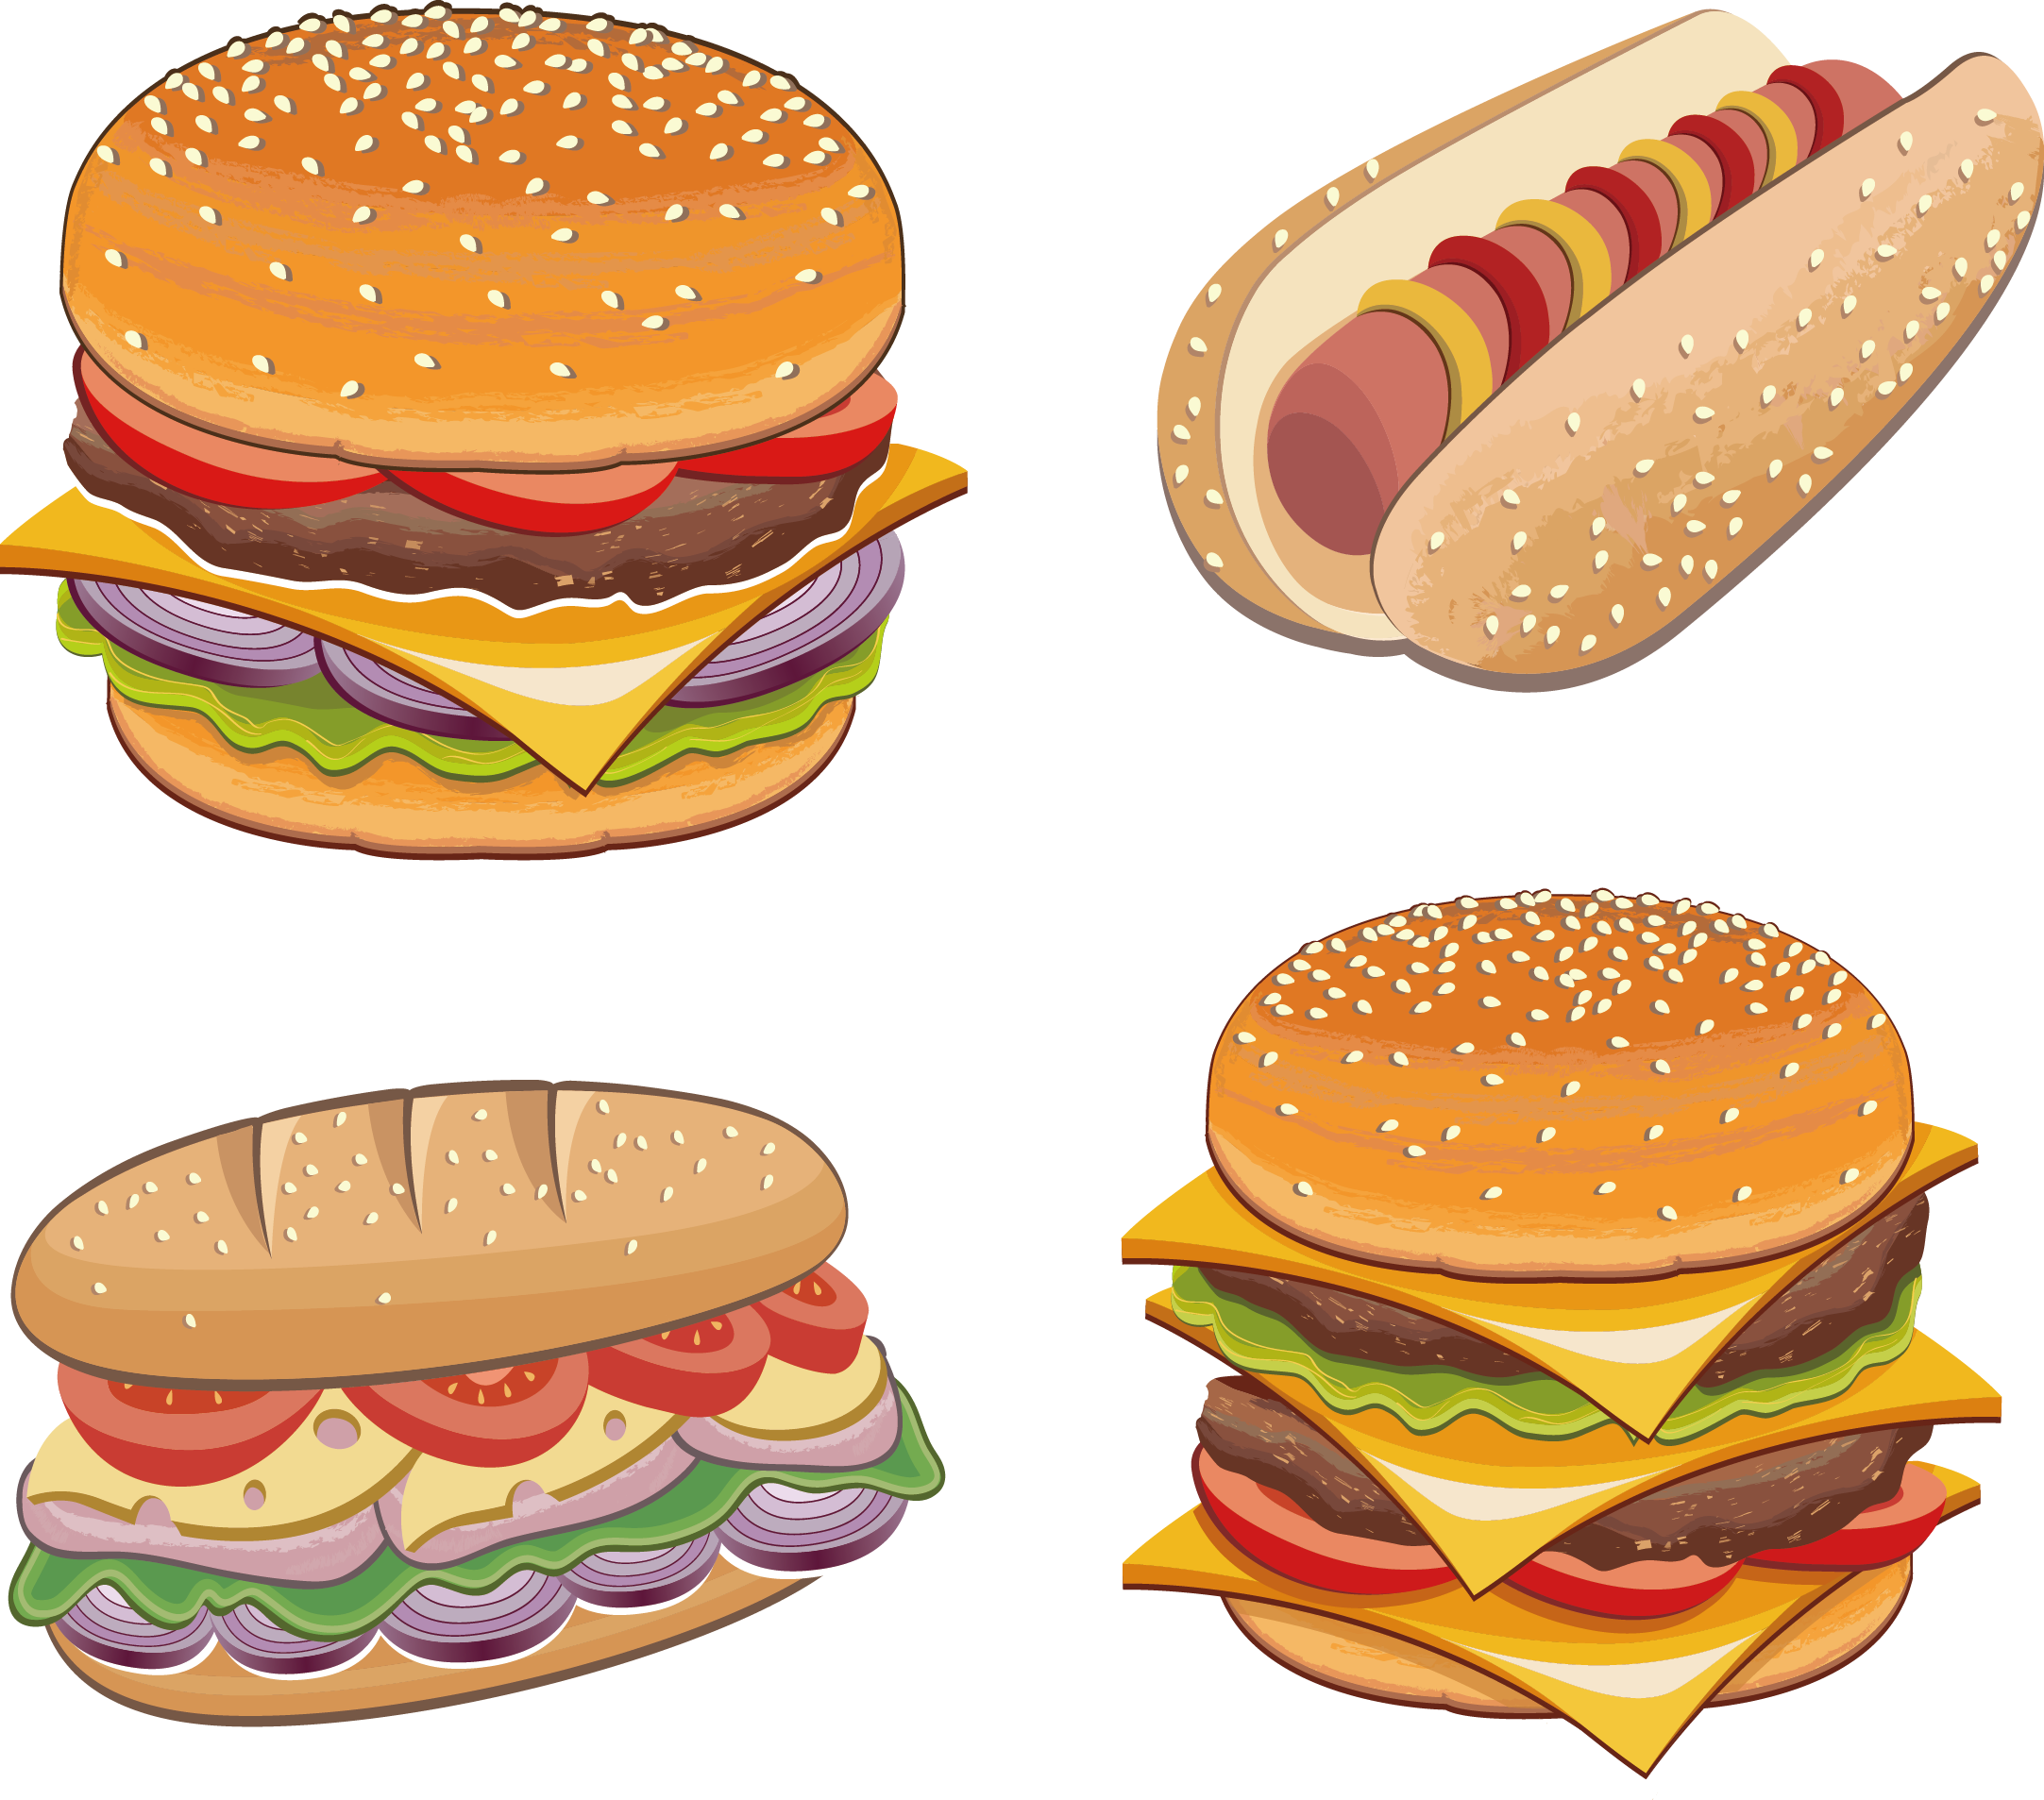 Cute hamburger and fries png. Chicken sandwich fast food